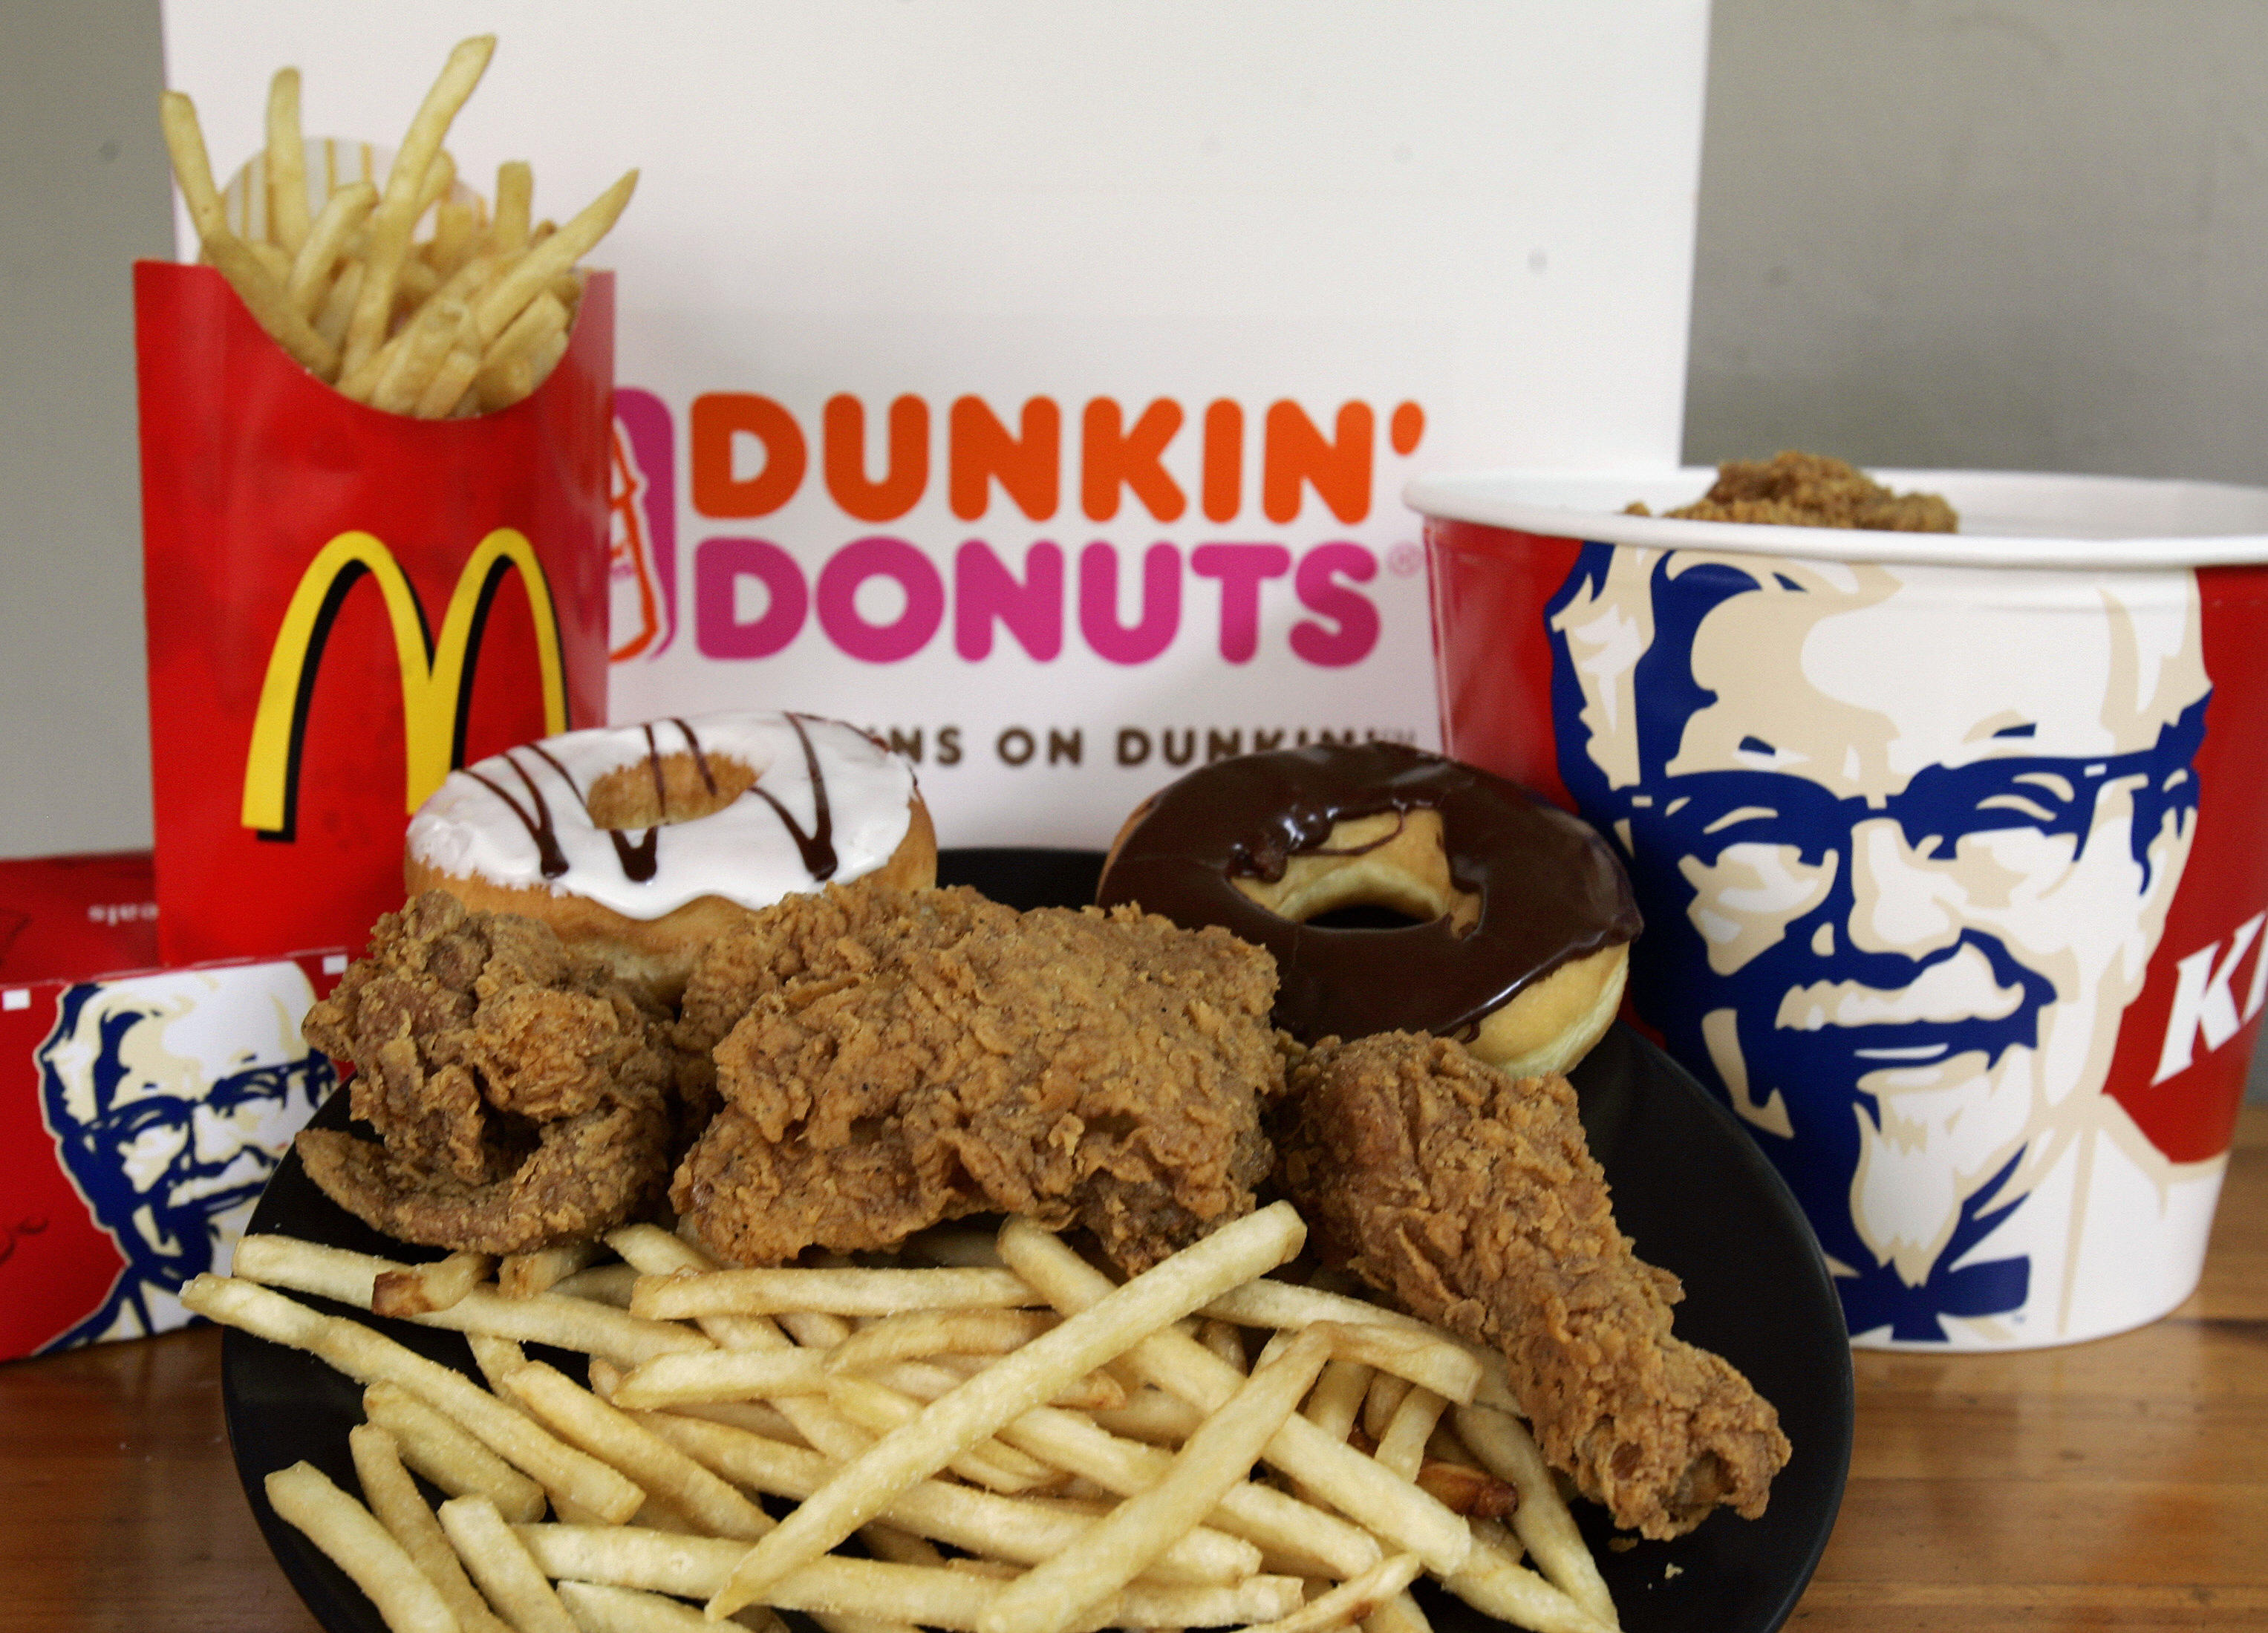 """Doughnuts from Dunkin"""" Donuts, French fries from McDonalds and fried chicken from Kentucky Fried Chicken are displayed as staples of the American diet"""